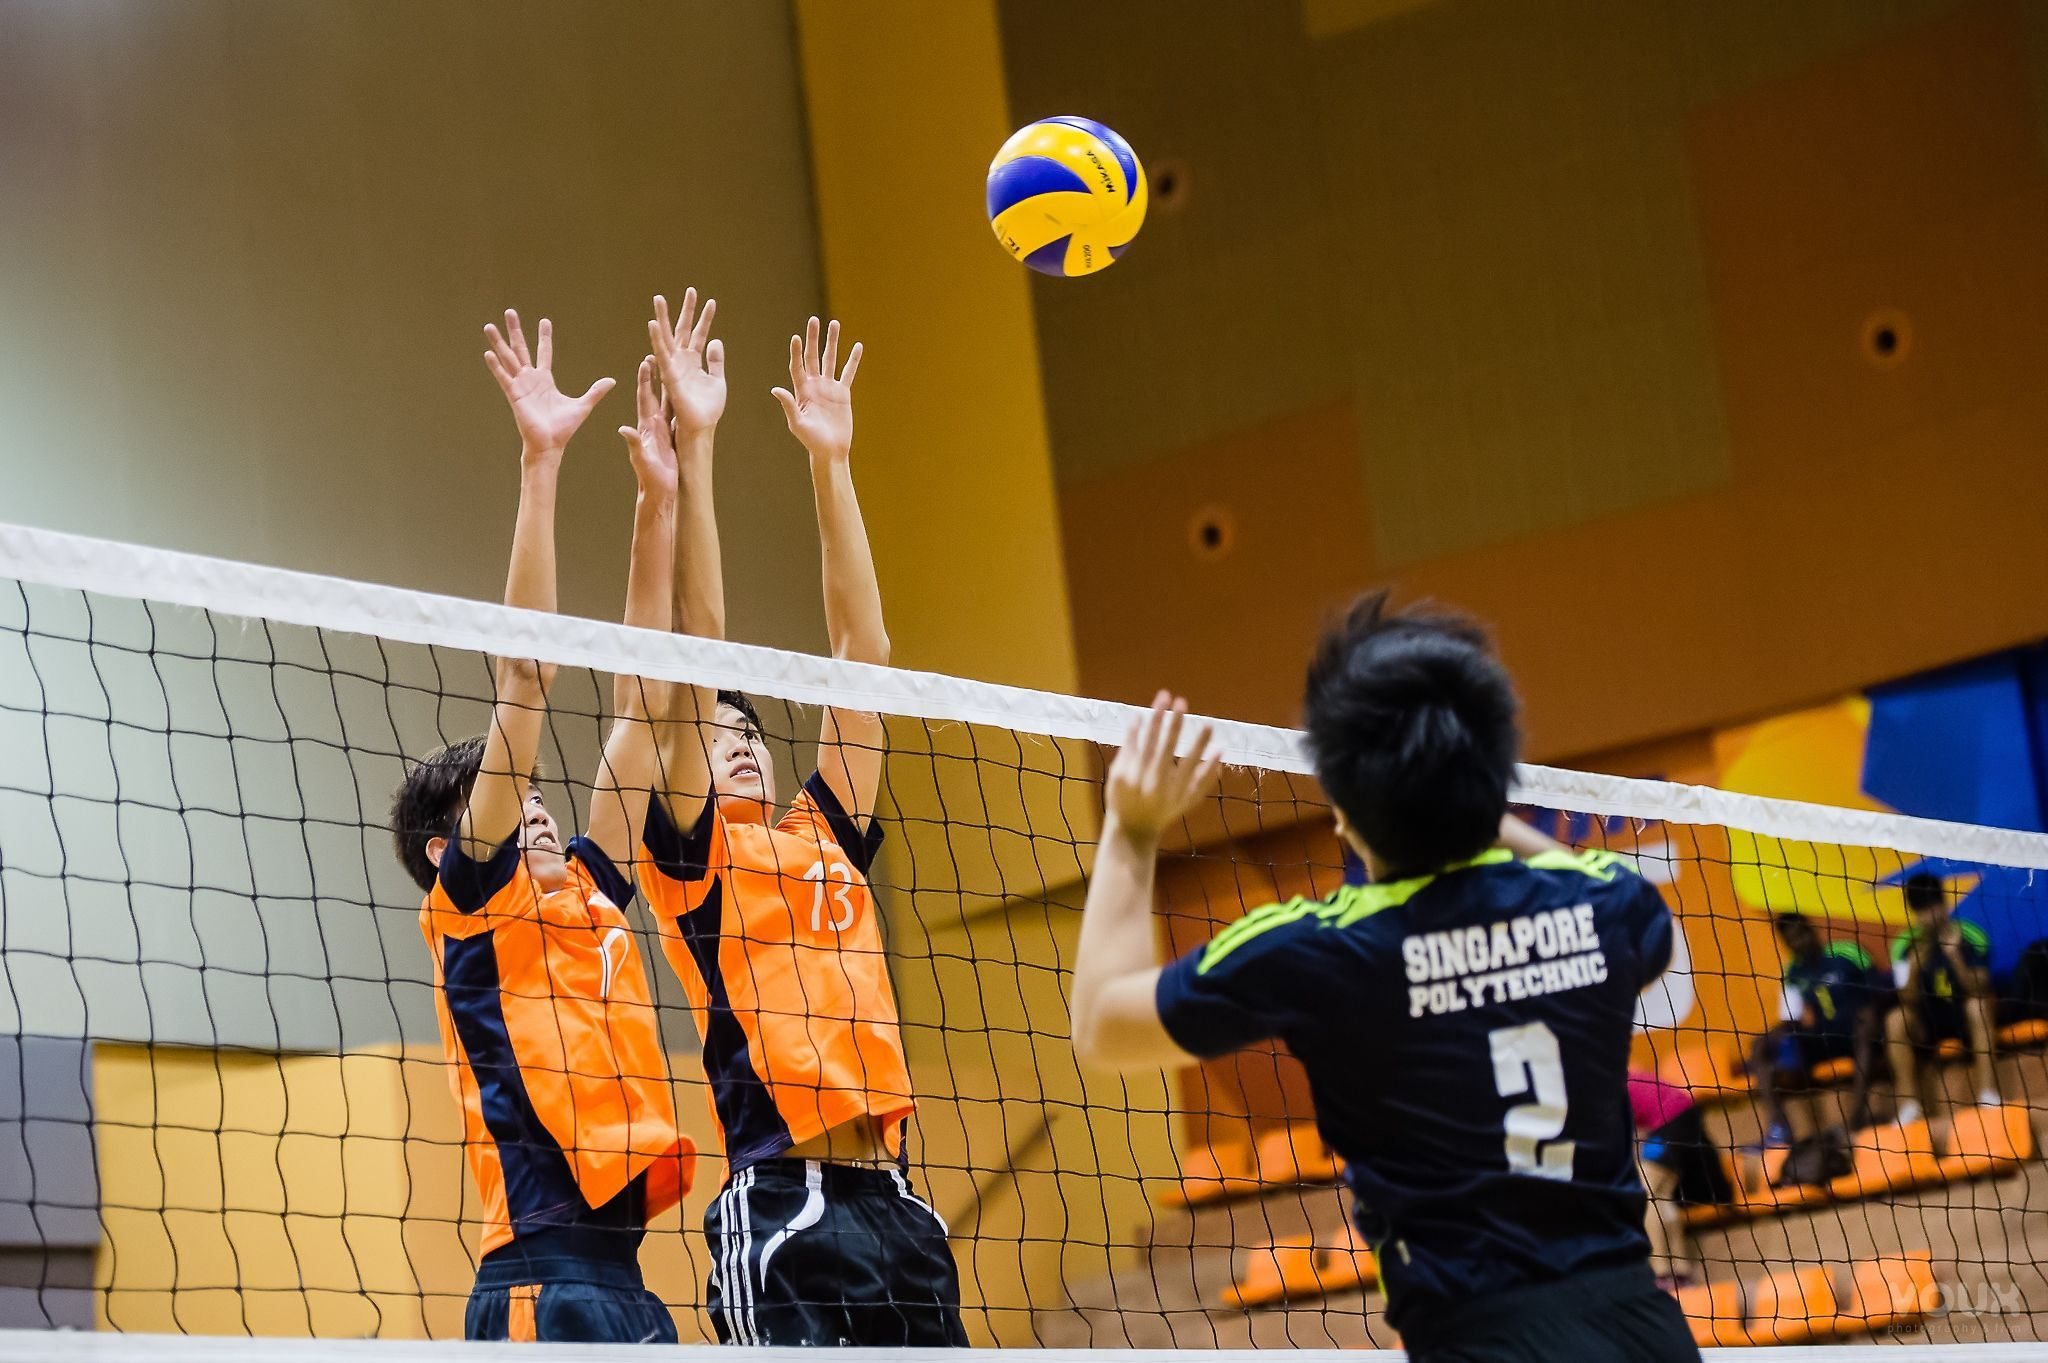 Institute Varsity Polytechnic Ivp Games 2015 Teamnus Men S Volleyball Singapore Sports Photography Mens Volleyball Sports Photography Sports Photograph